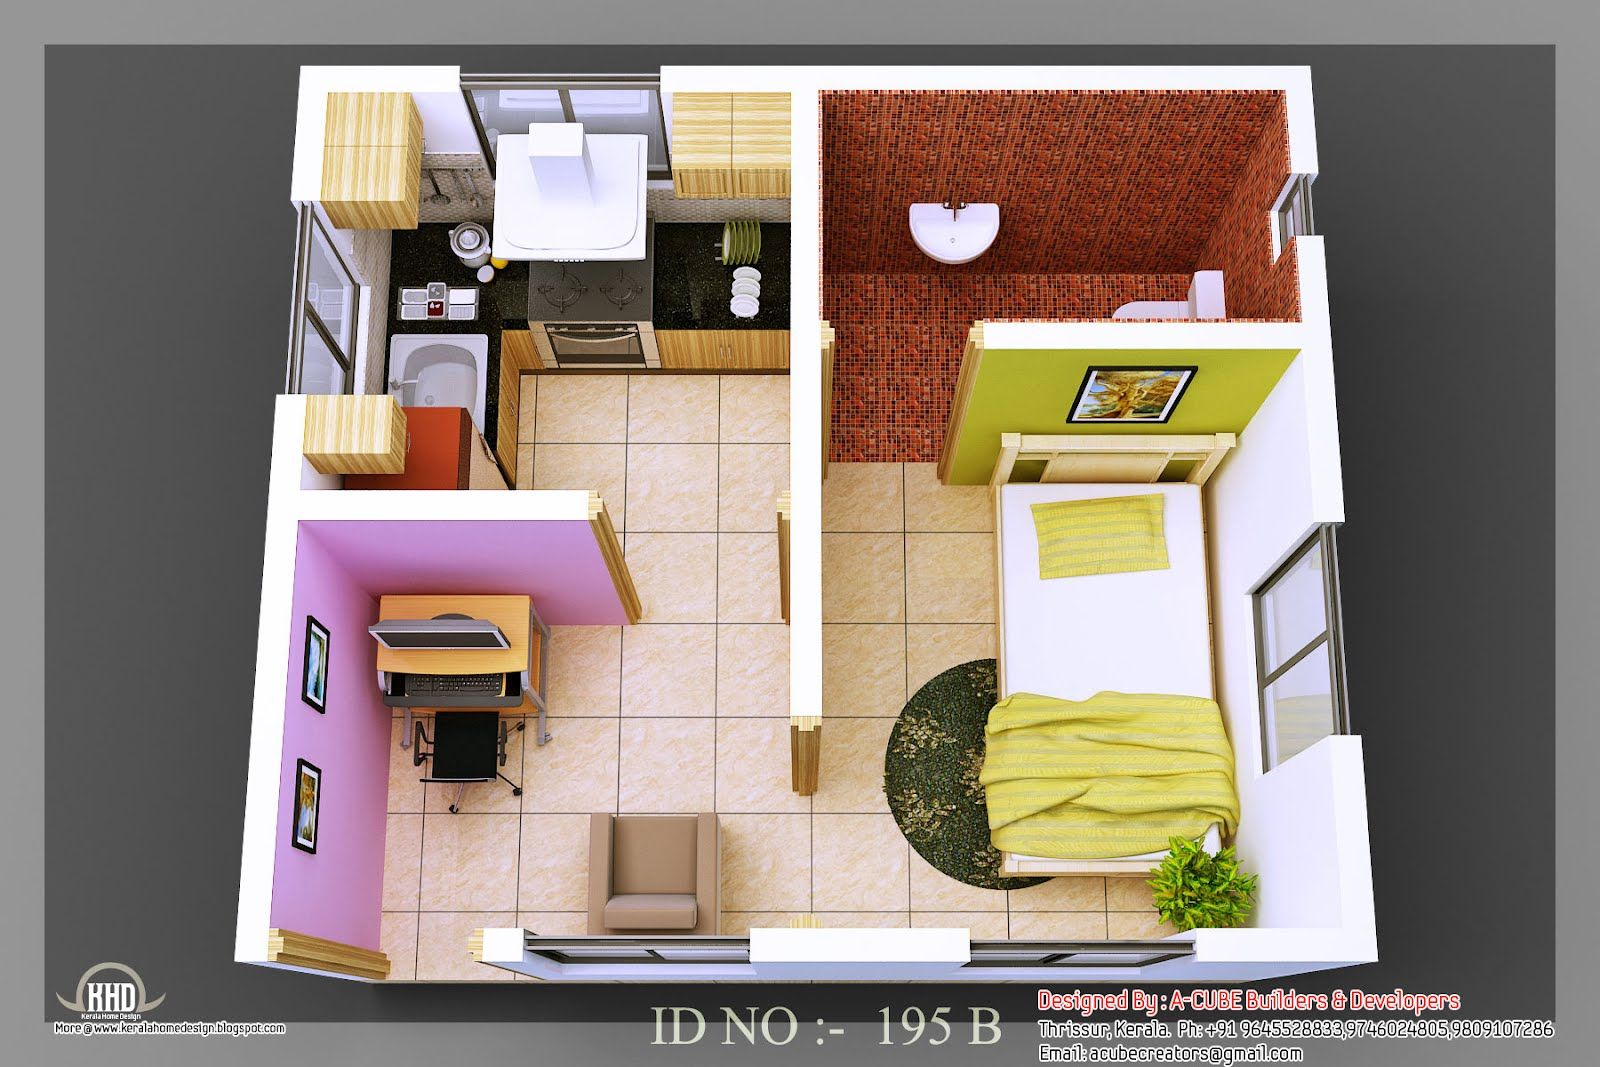 New Tiny House Interiors 3D Isometric Views Of Small House Plans